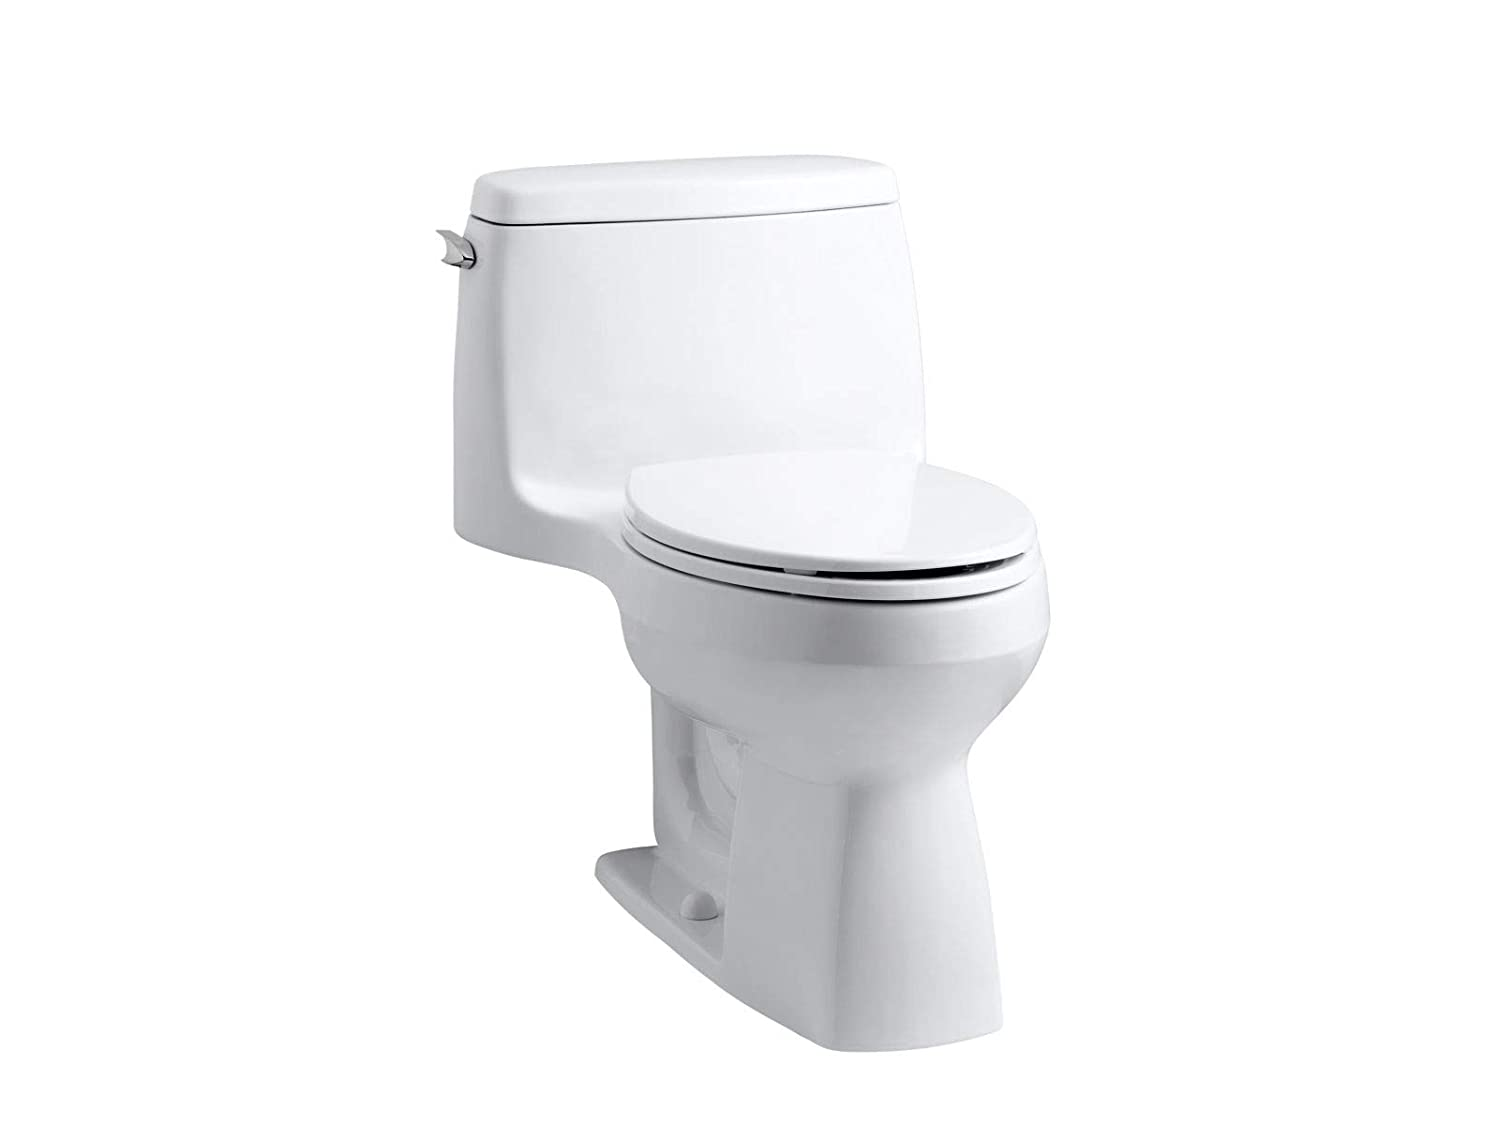 Top 5 Best Kohler Toilets Reviews in 2020 1